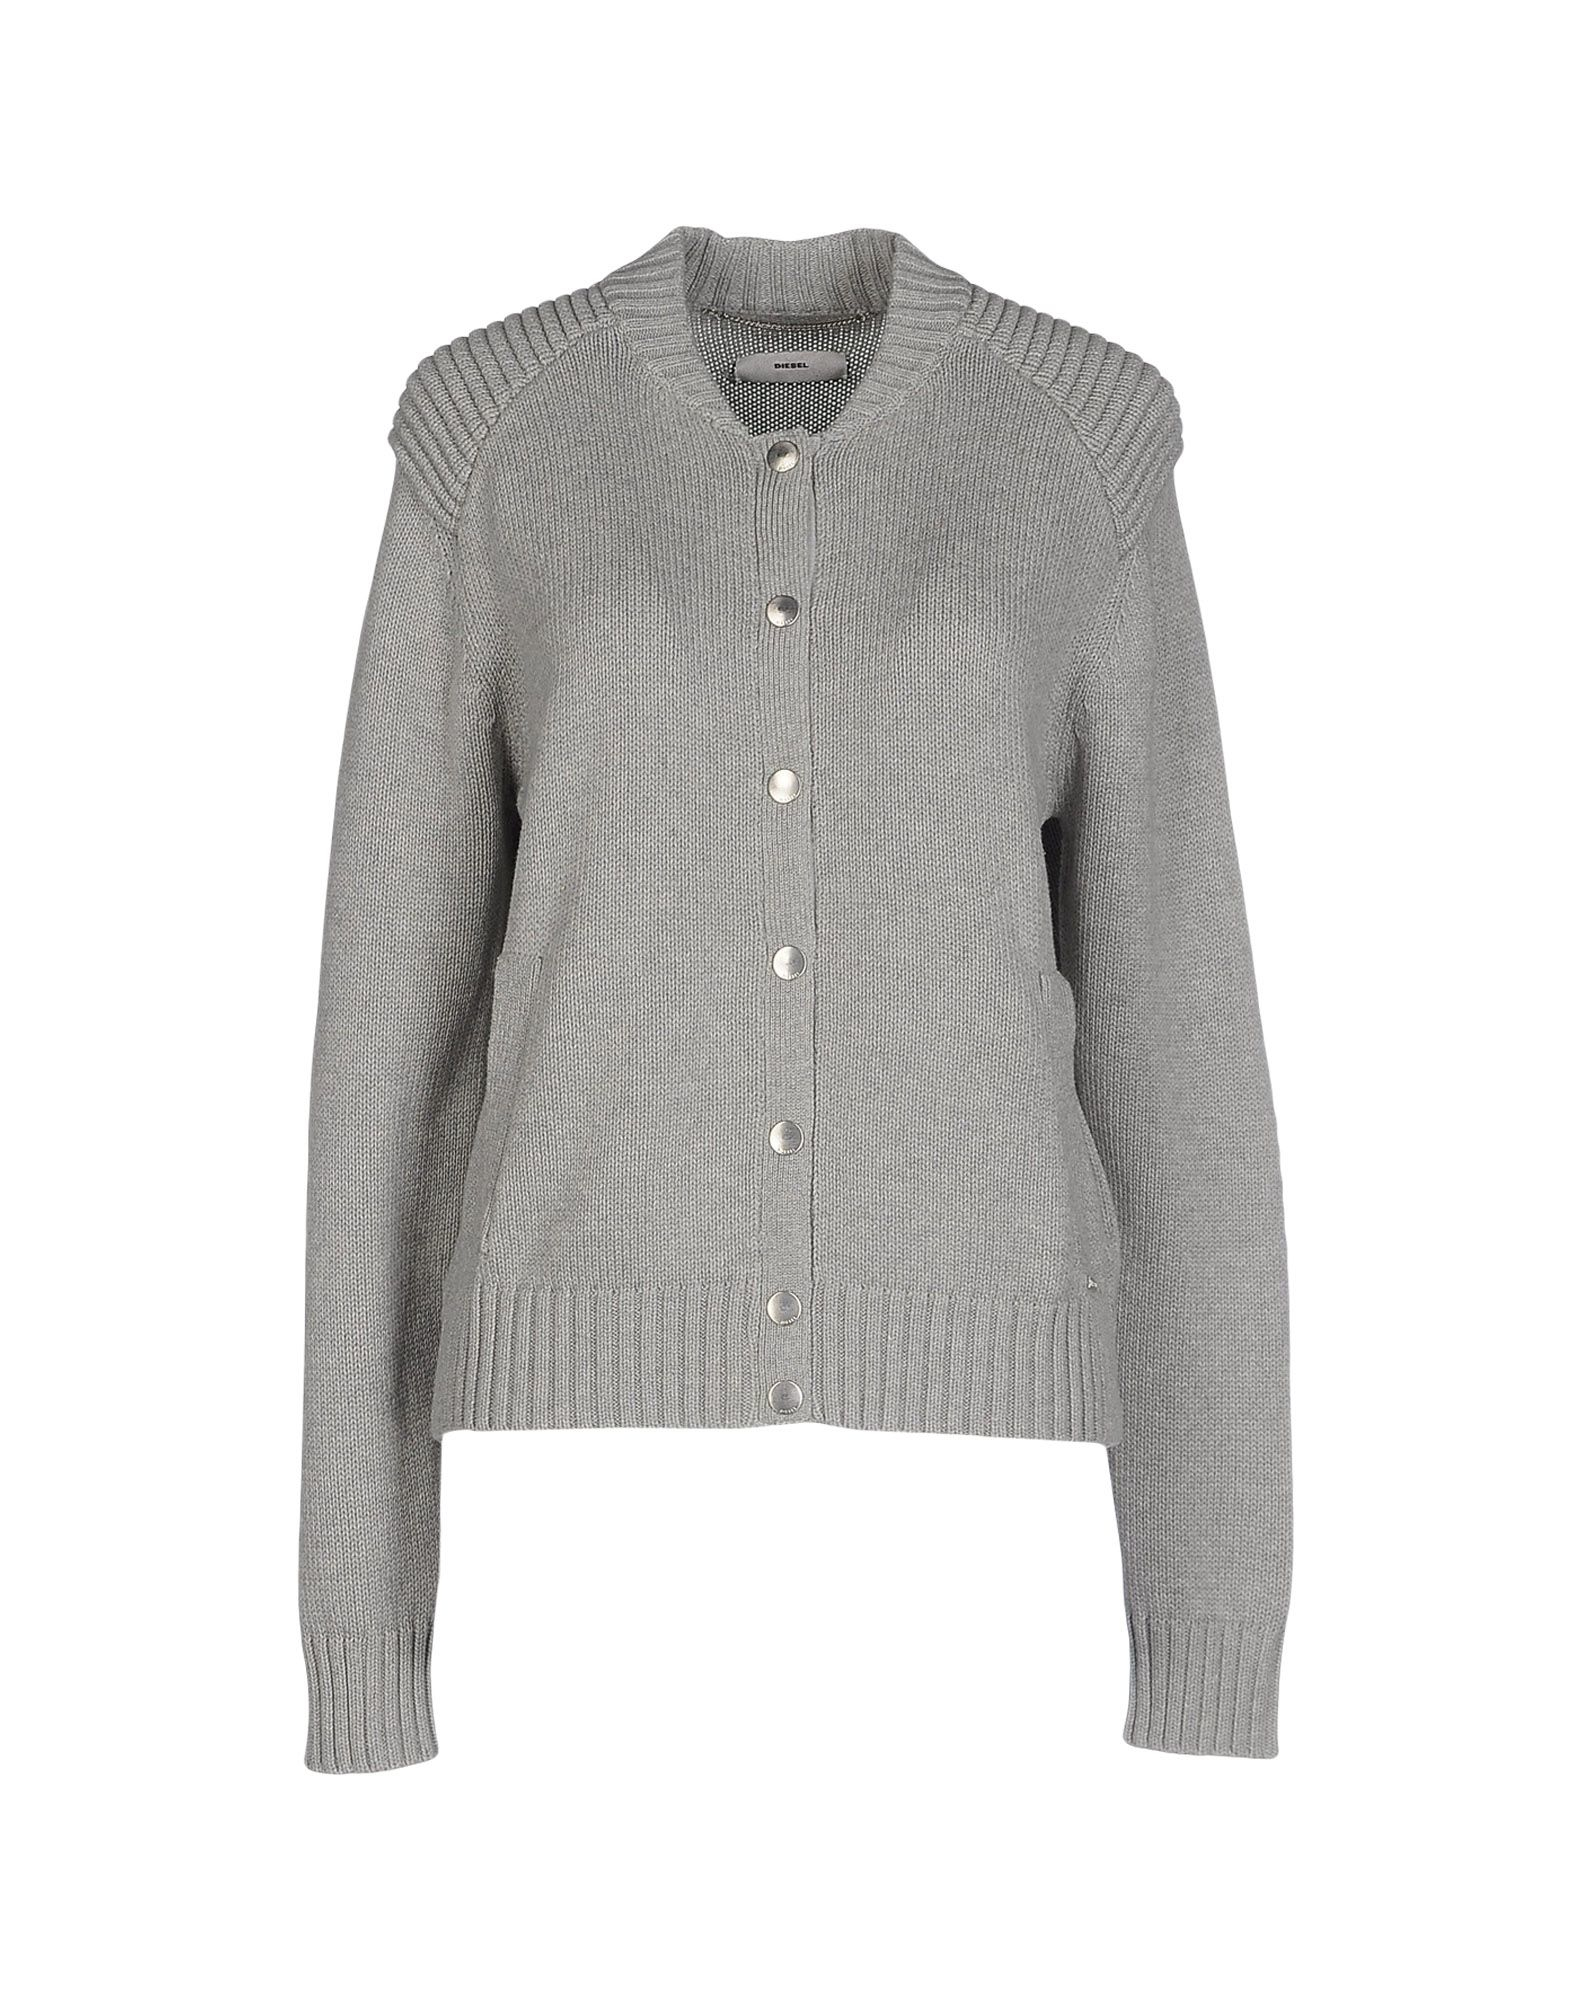 Shop prAna women's sweaters, hoodies, cardigans & wraps. Find versatile, organic cotton & travel-friendly styles that are made to move with you. Discover our range of sweaters for women.